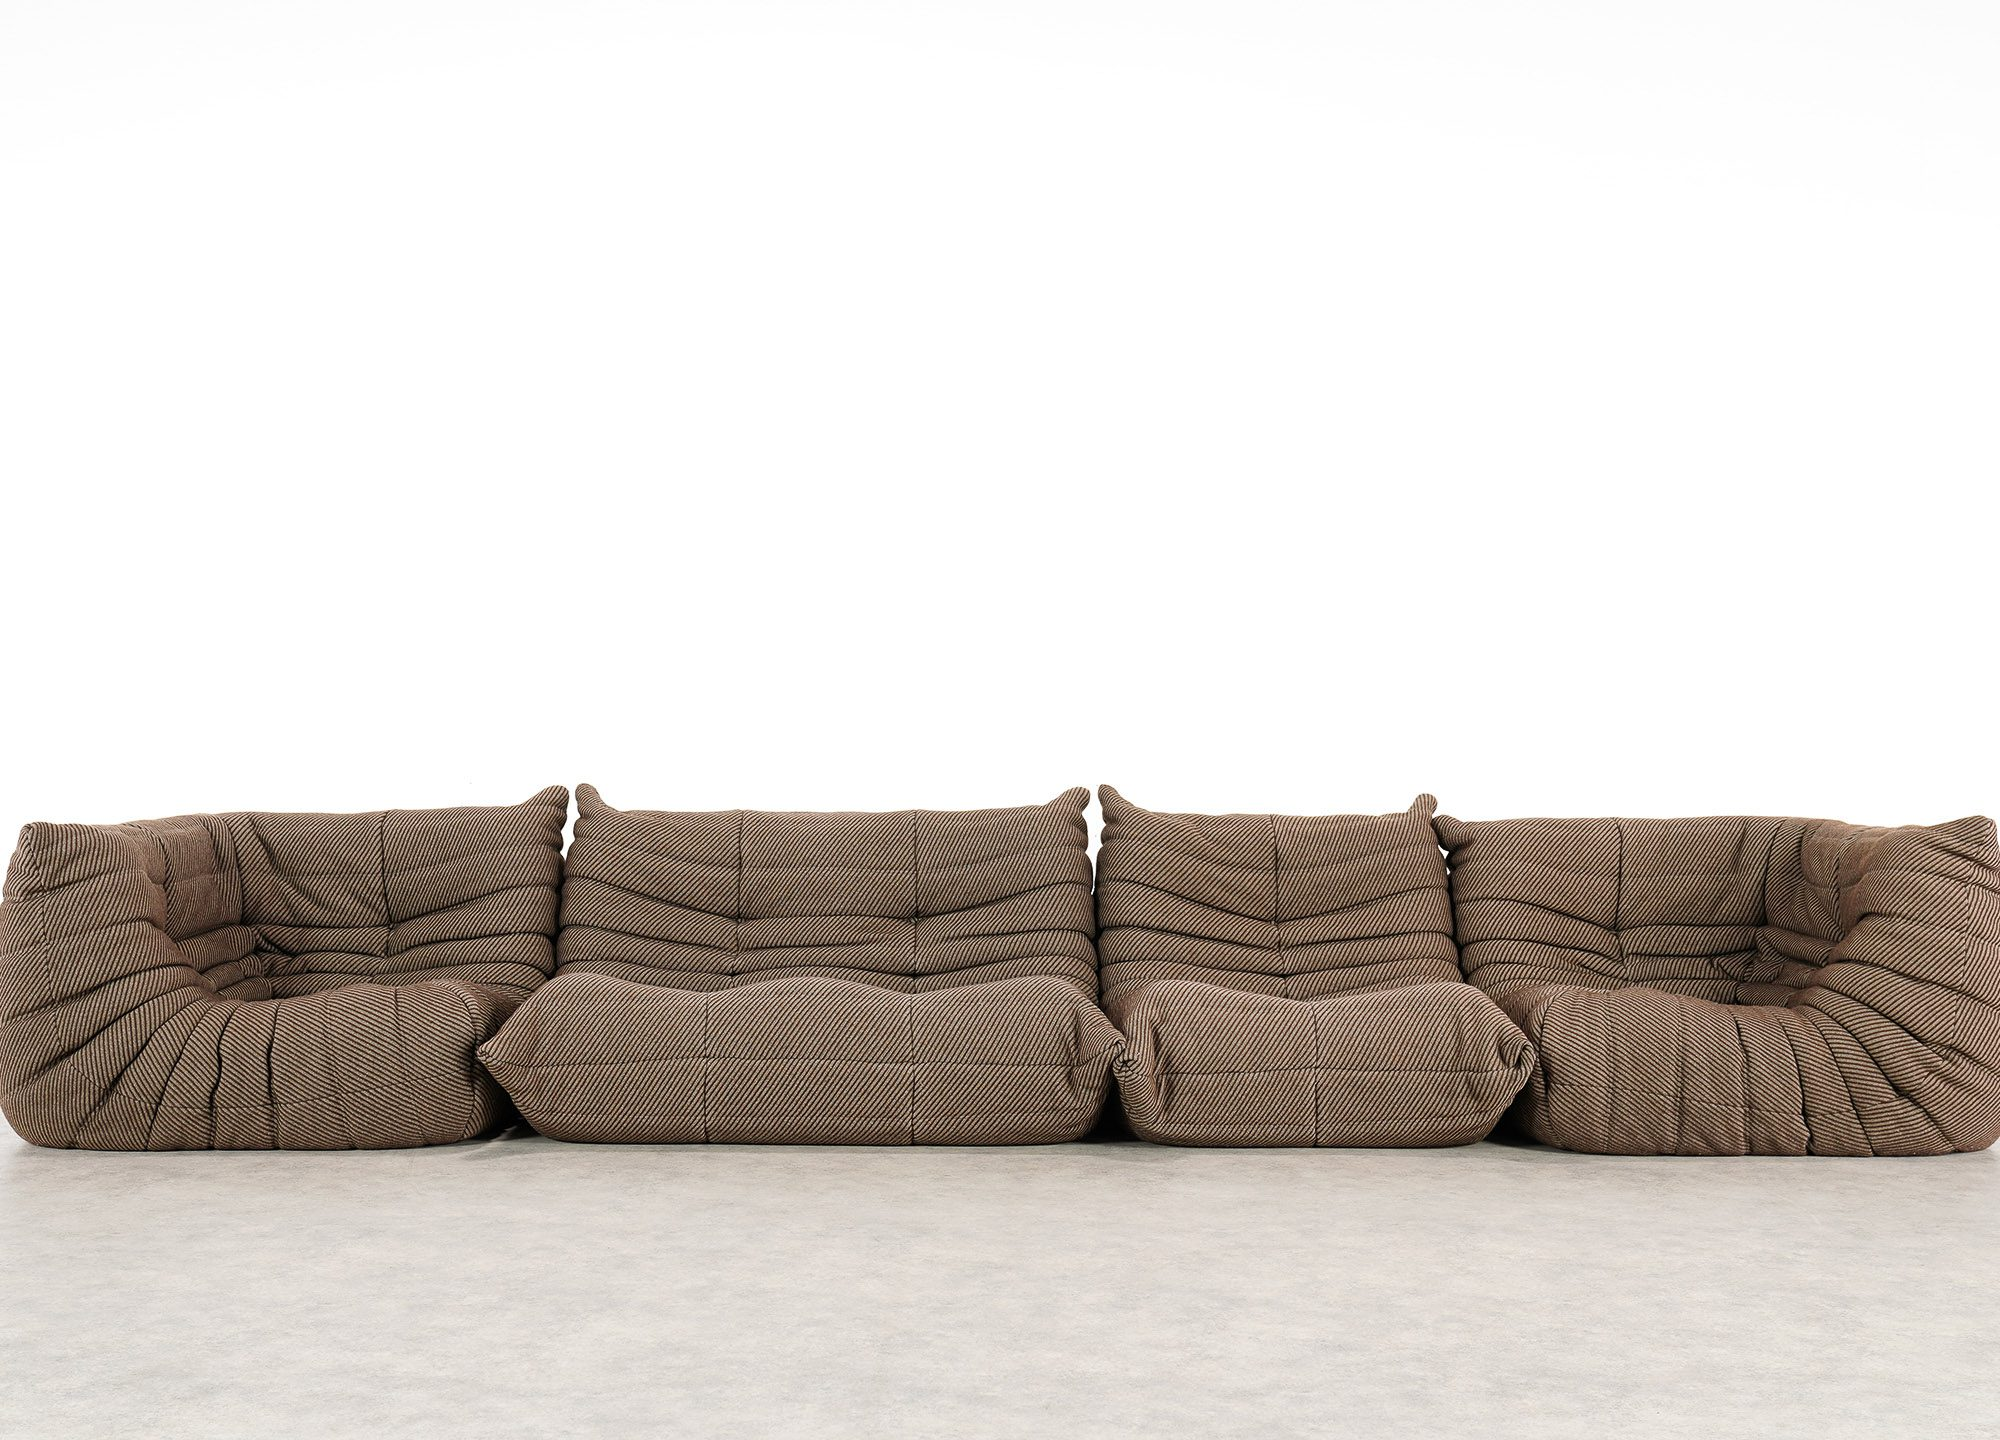 Full Size of Togo Sofa Ligne Roset For Sale Used Uk Replica Dimensions With Arms Melbourne Reproduction Nz Ireland Australia Kaufen By Michel Ducaroy Jugendzimmer Gelb Xora Sofa Togo Sofa